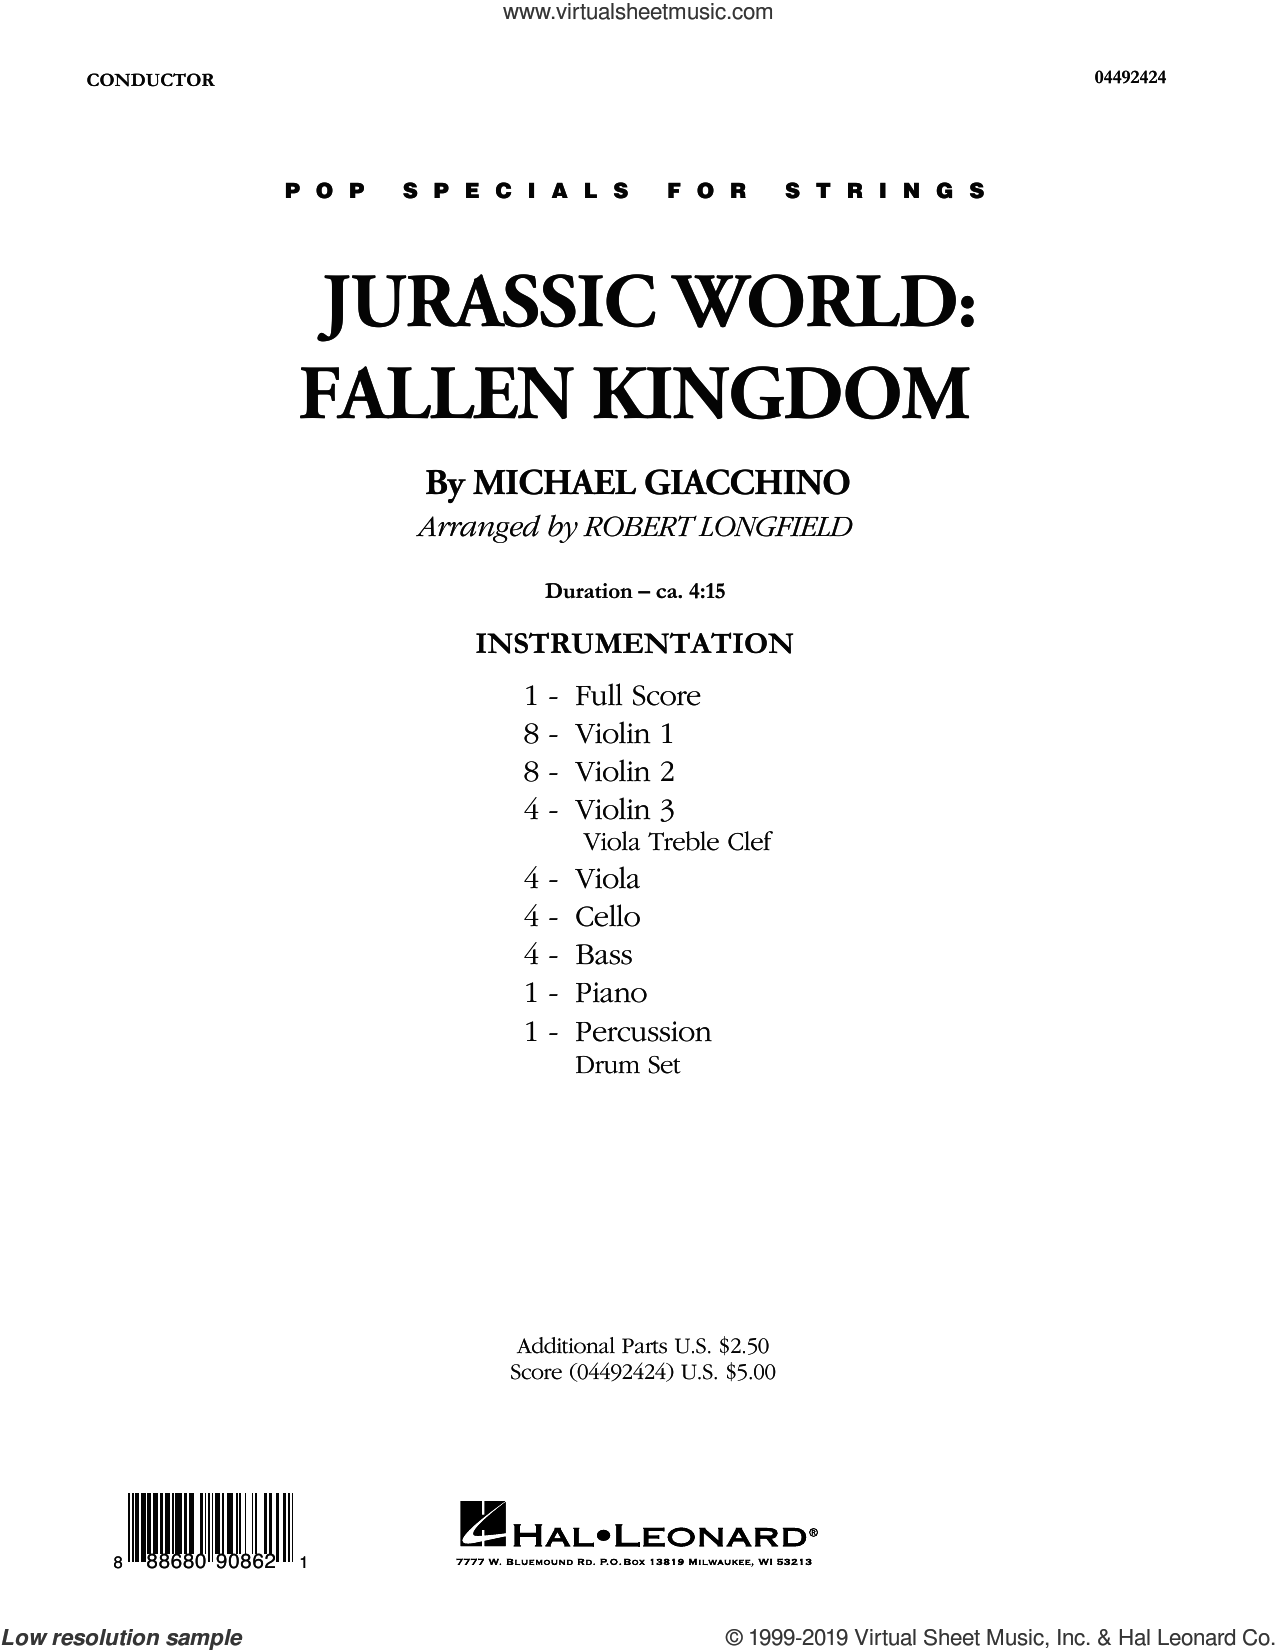 Jurassic World: Fallen Kingdom (arr. Robert Longfield) (COMPLETE) sheet music for orchestra by Robert Longfield and Michael Giacchino, classical score, intermediate skill level